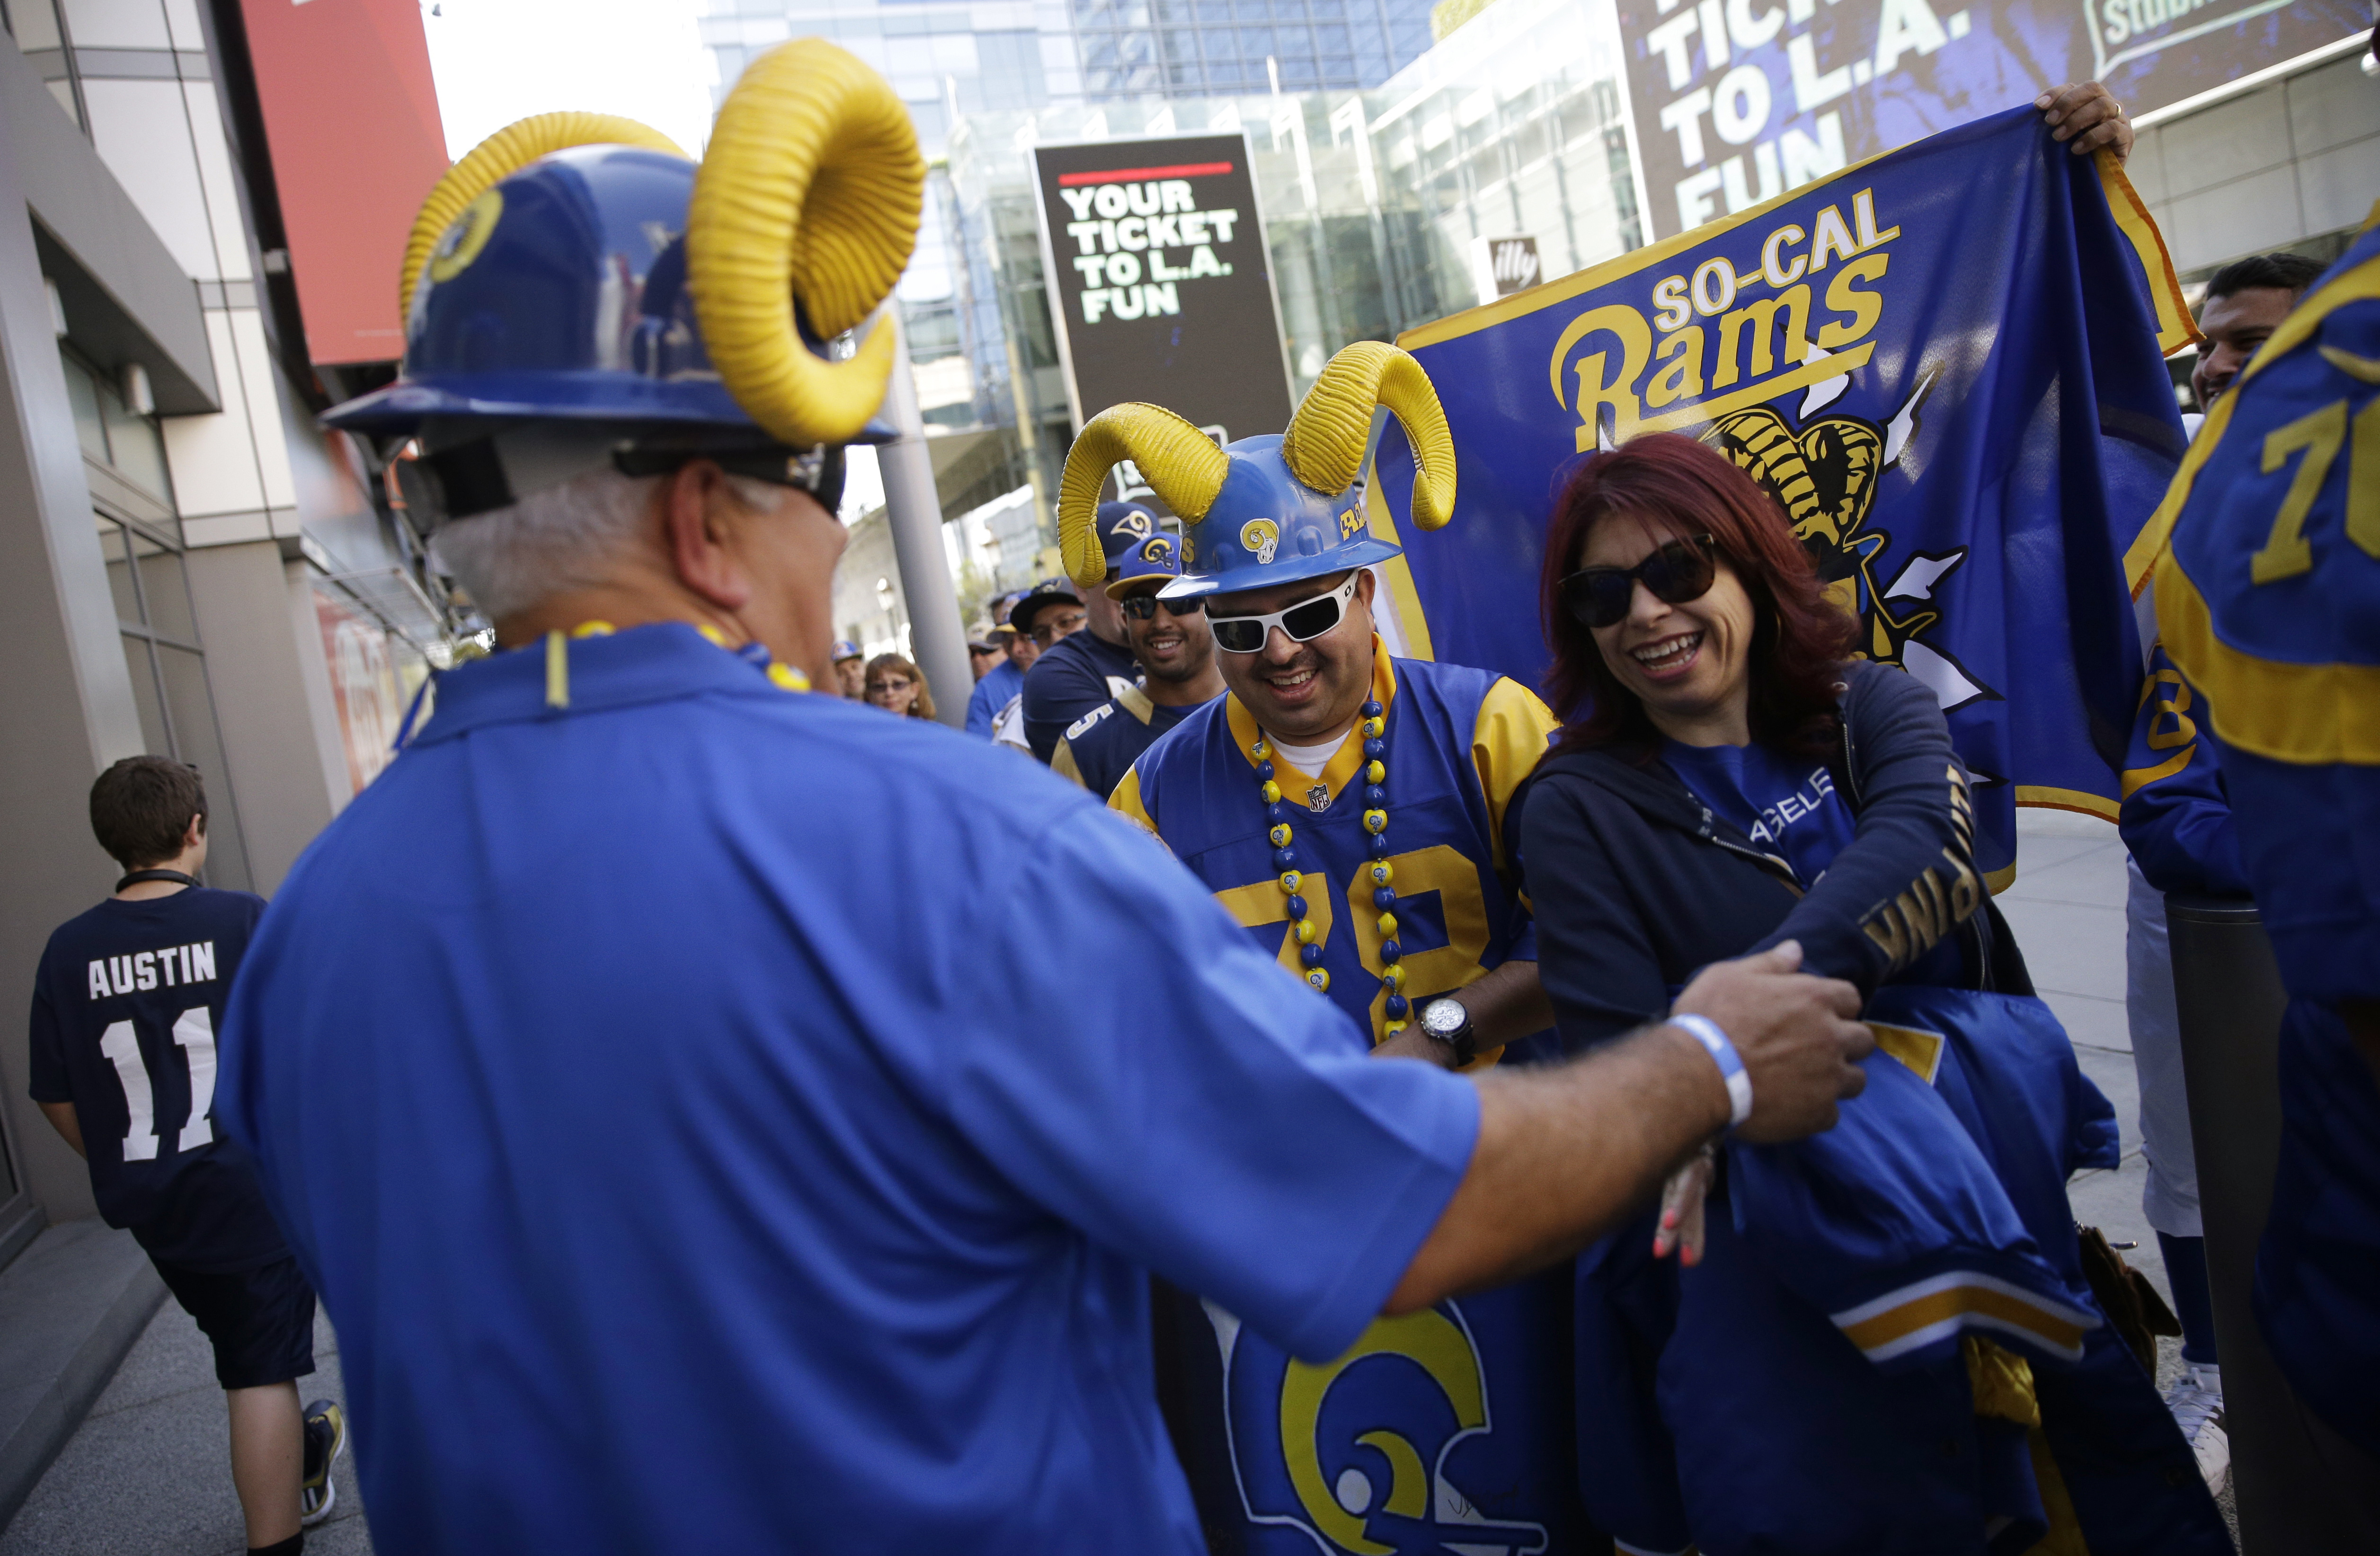 Los Angeles Rams fans greet each other while waiting in line to attend a  2016 NFL football draft party Thursday, April 28, 2016 in Los Angeles. (AP Photo/Jae C. Hong)